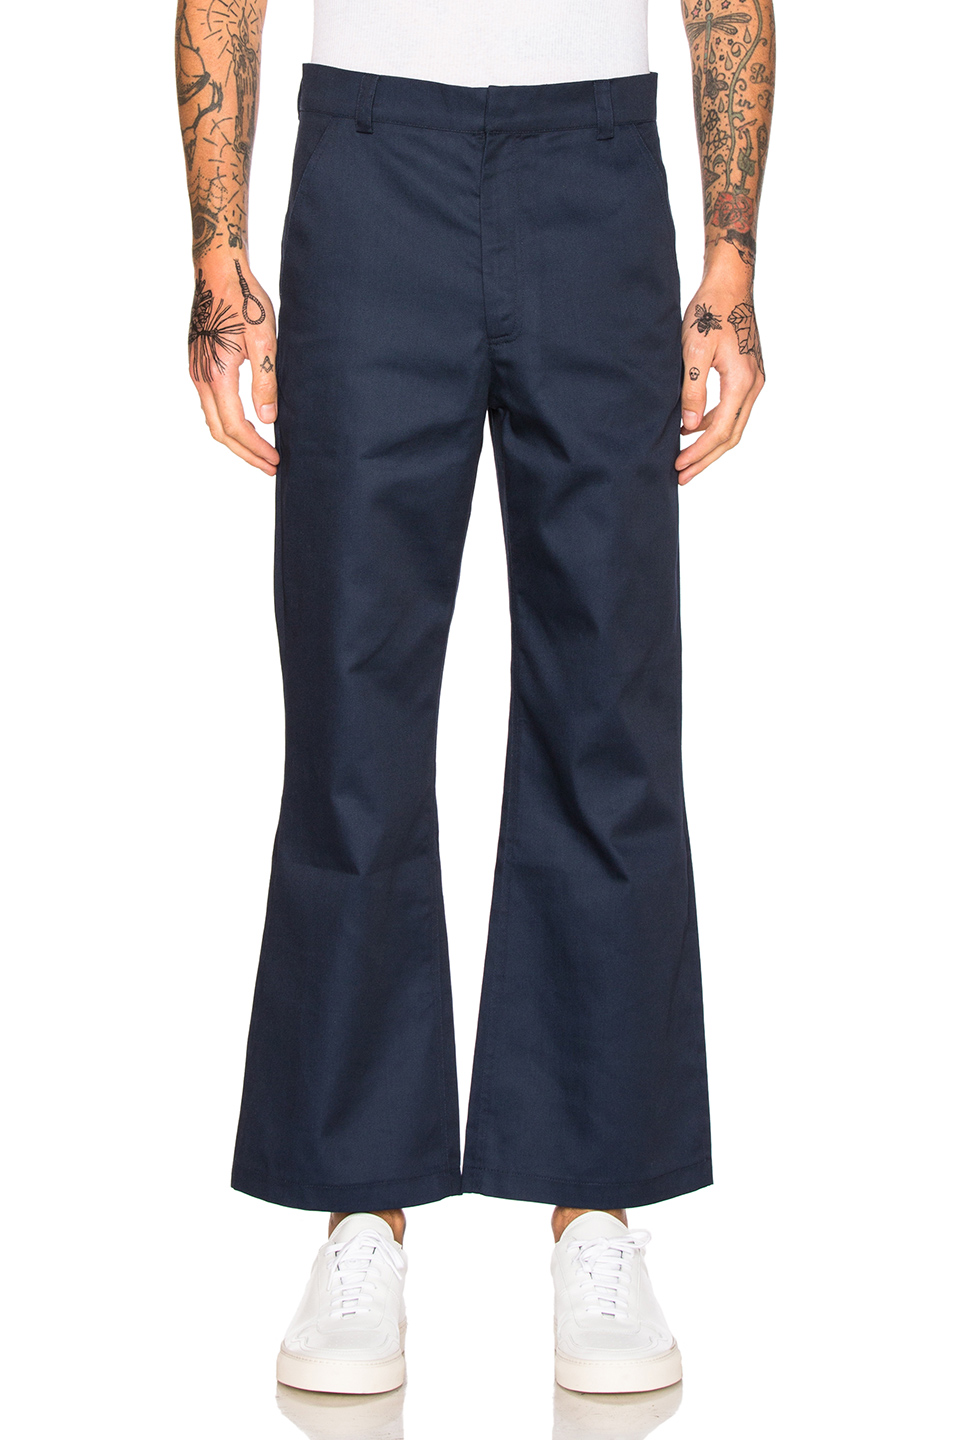 Martine Rose Kick Flare Trousers in Blue